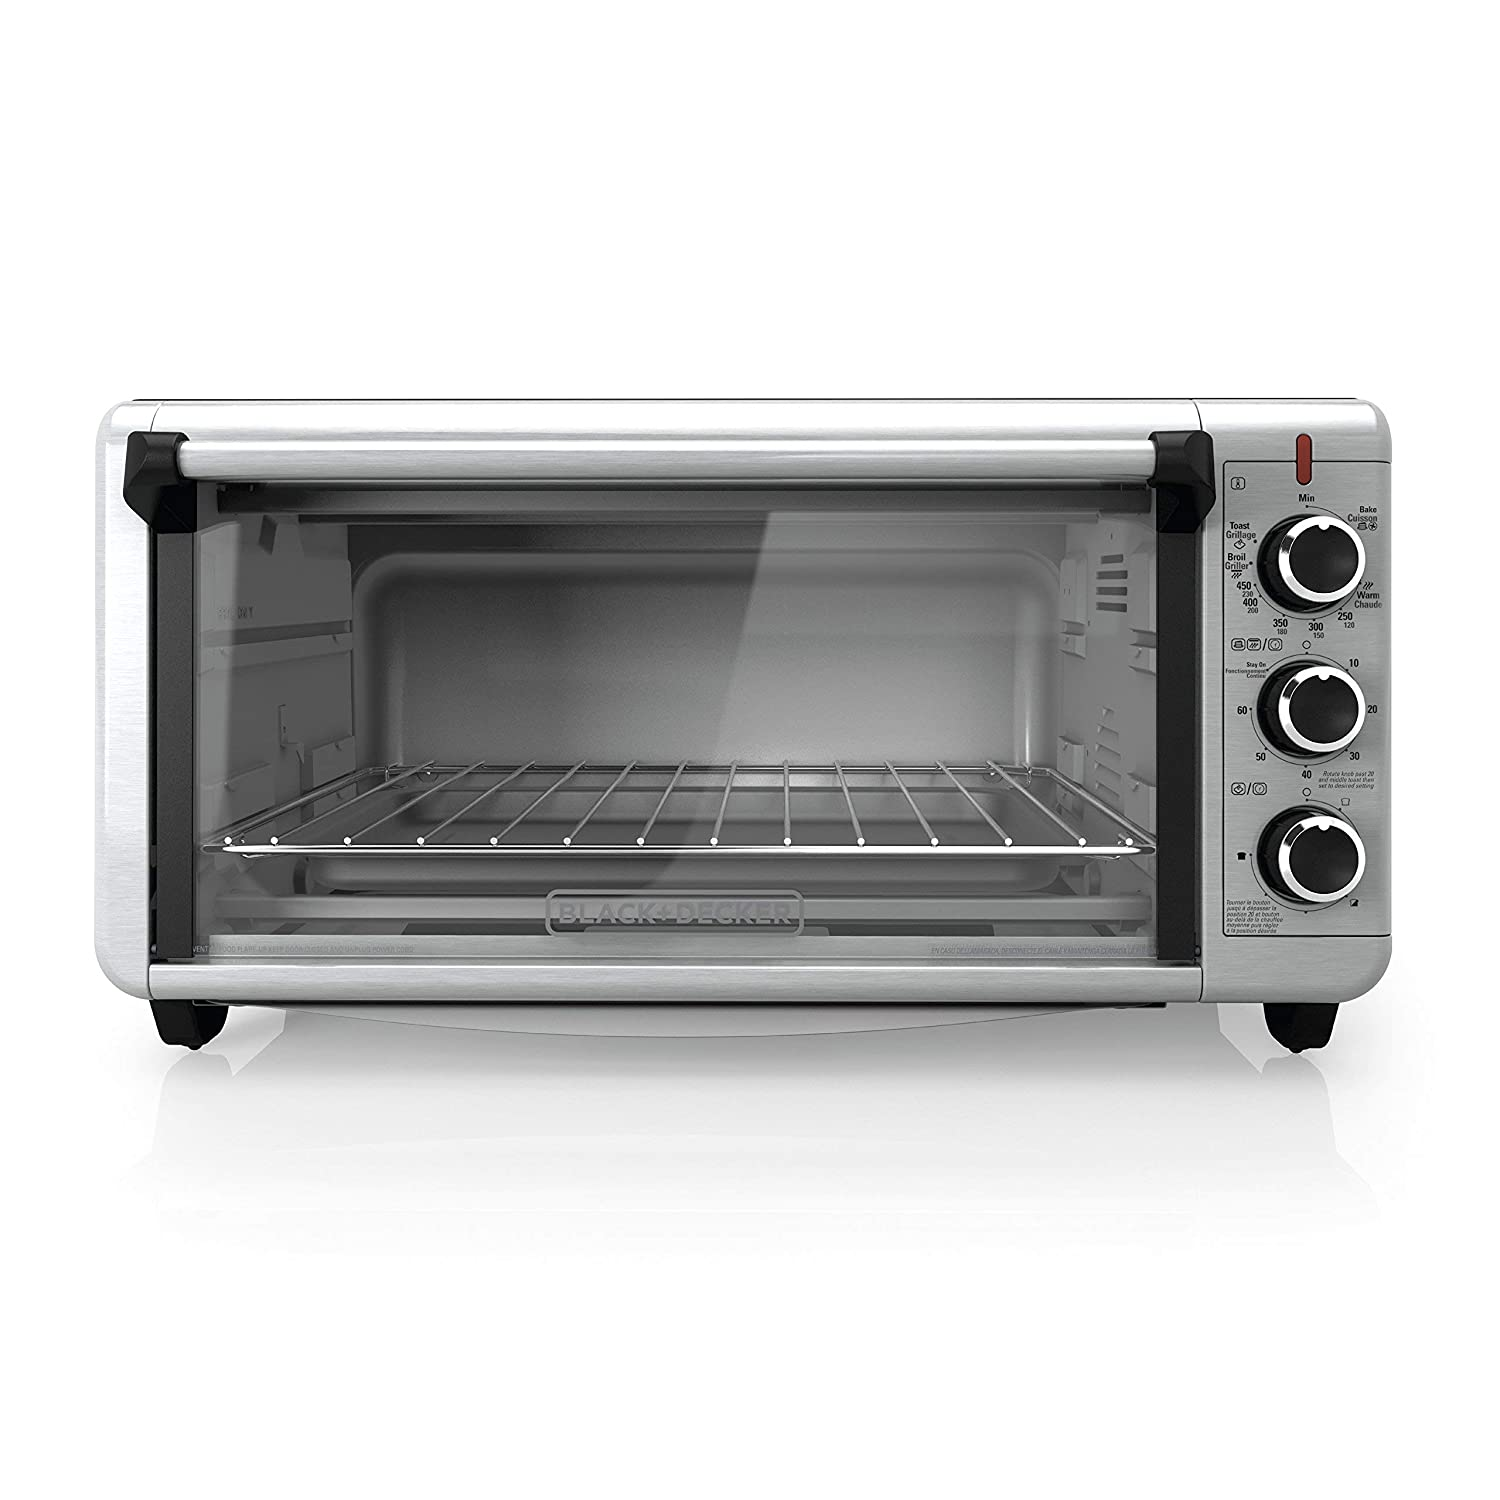 BLACK+DECKER TO3240XSBD 8-Slice Extra Wide Convection Countertop Toaster Oven, Includes Bake Pan, Broil Rack & Toasting Rack, Stainless Steel/Black Convection Toaster Oven (Certified Refurbished)